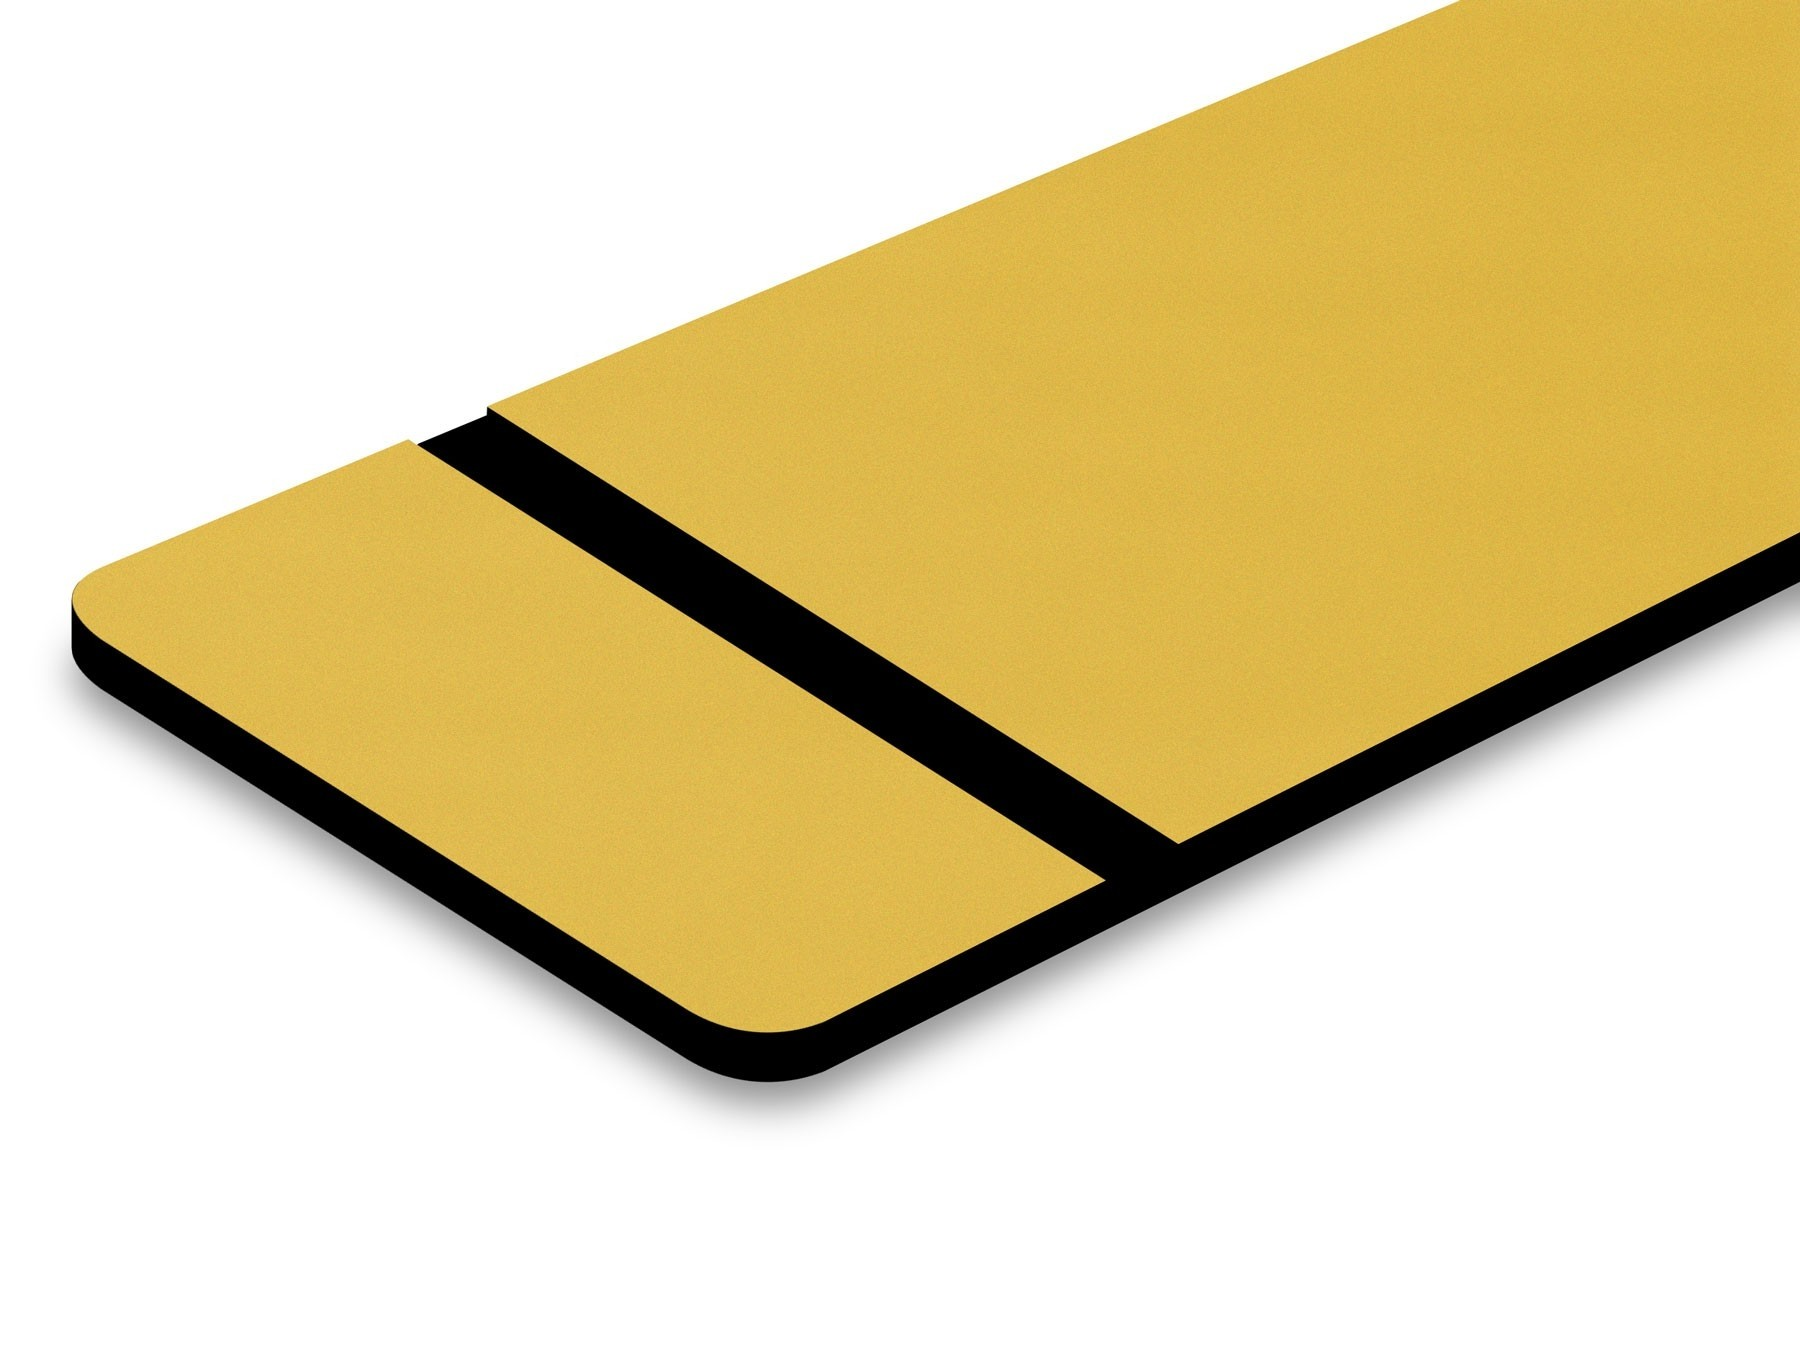 TroLase Metallic Plus, Brushed Gold/Black, 2ply, 0.8 mm